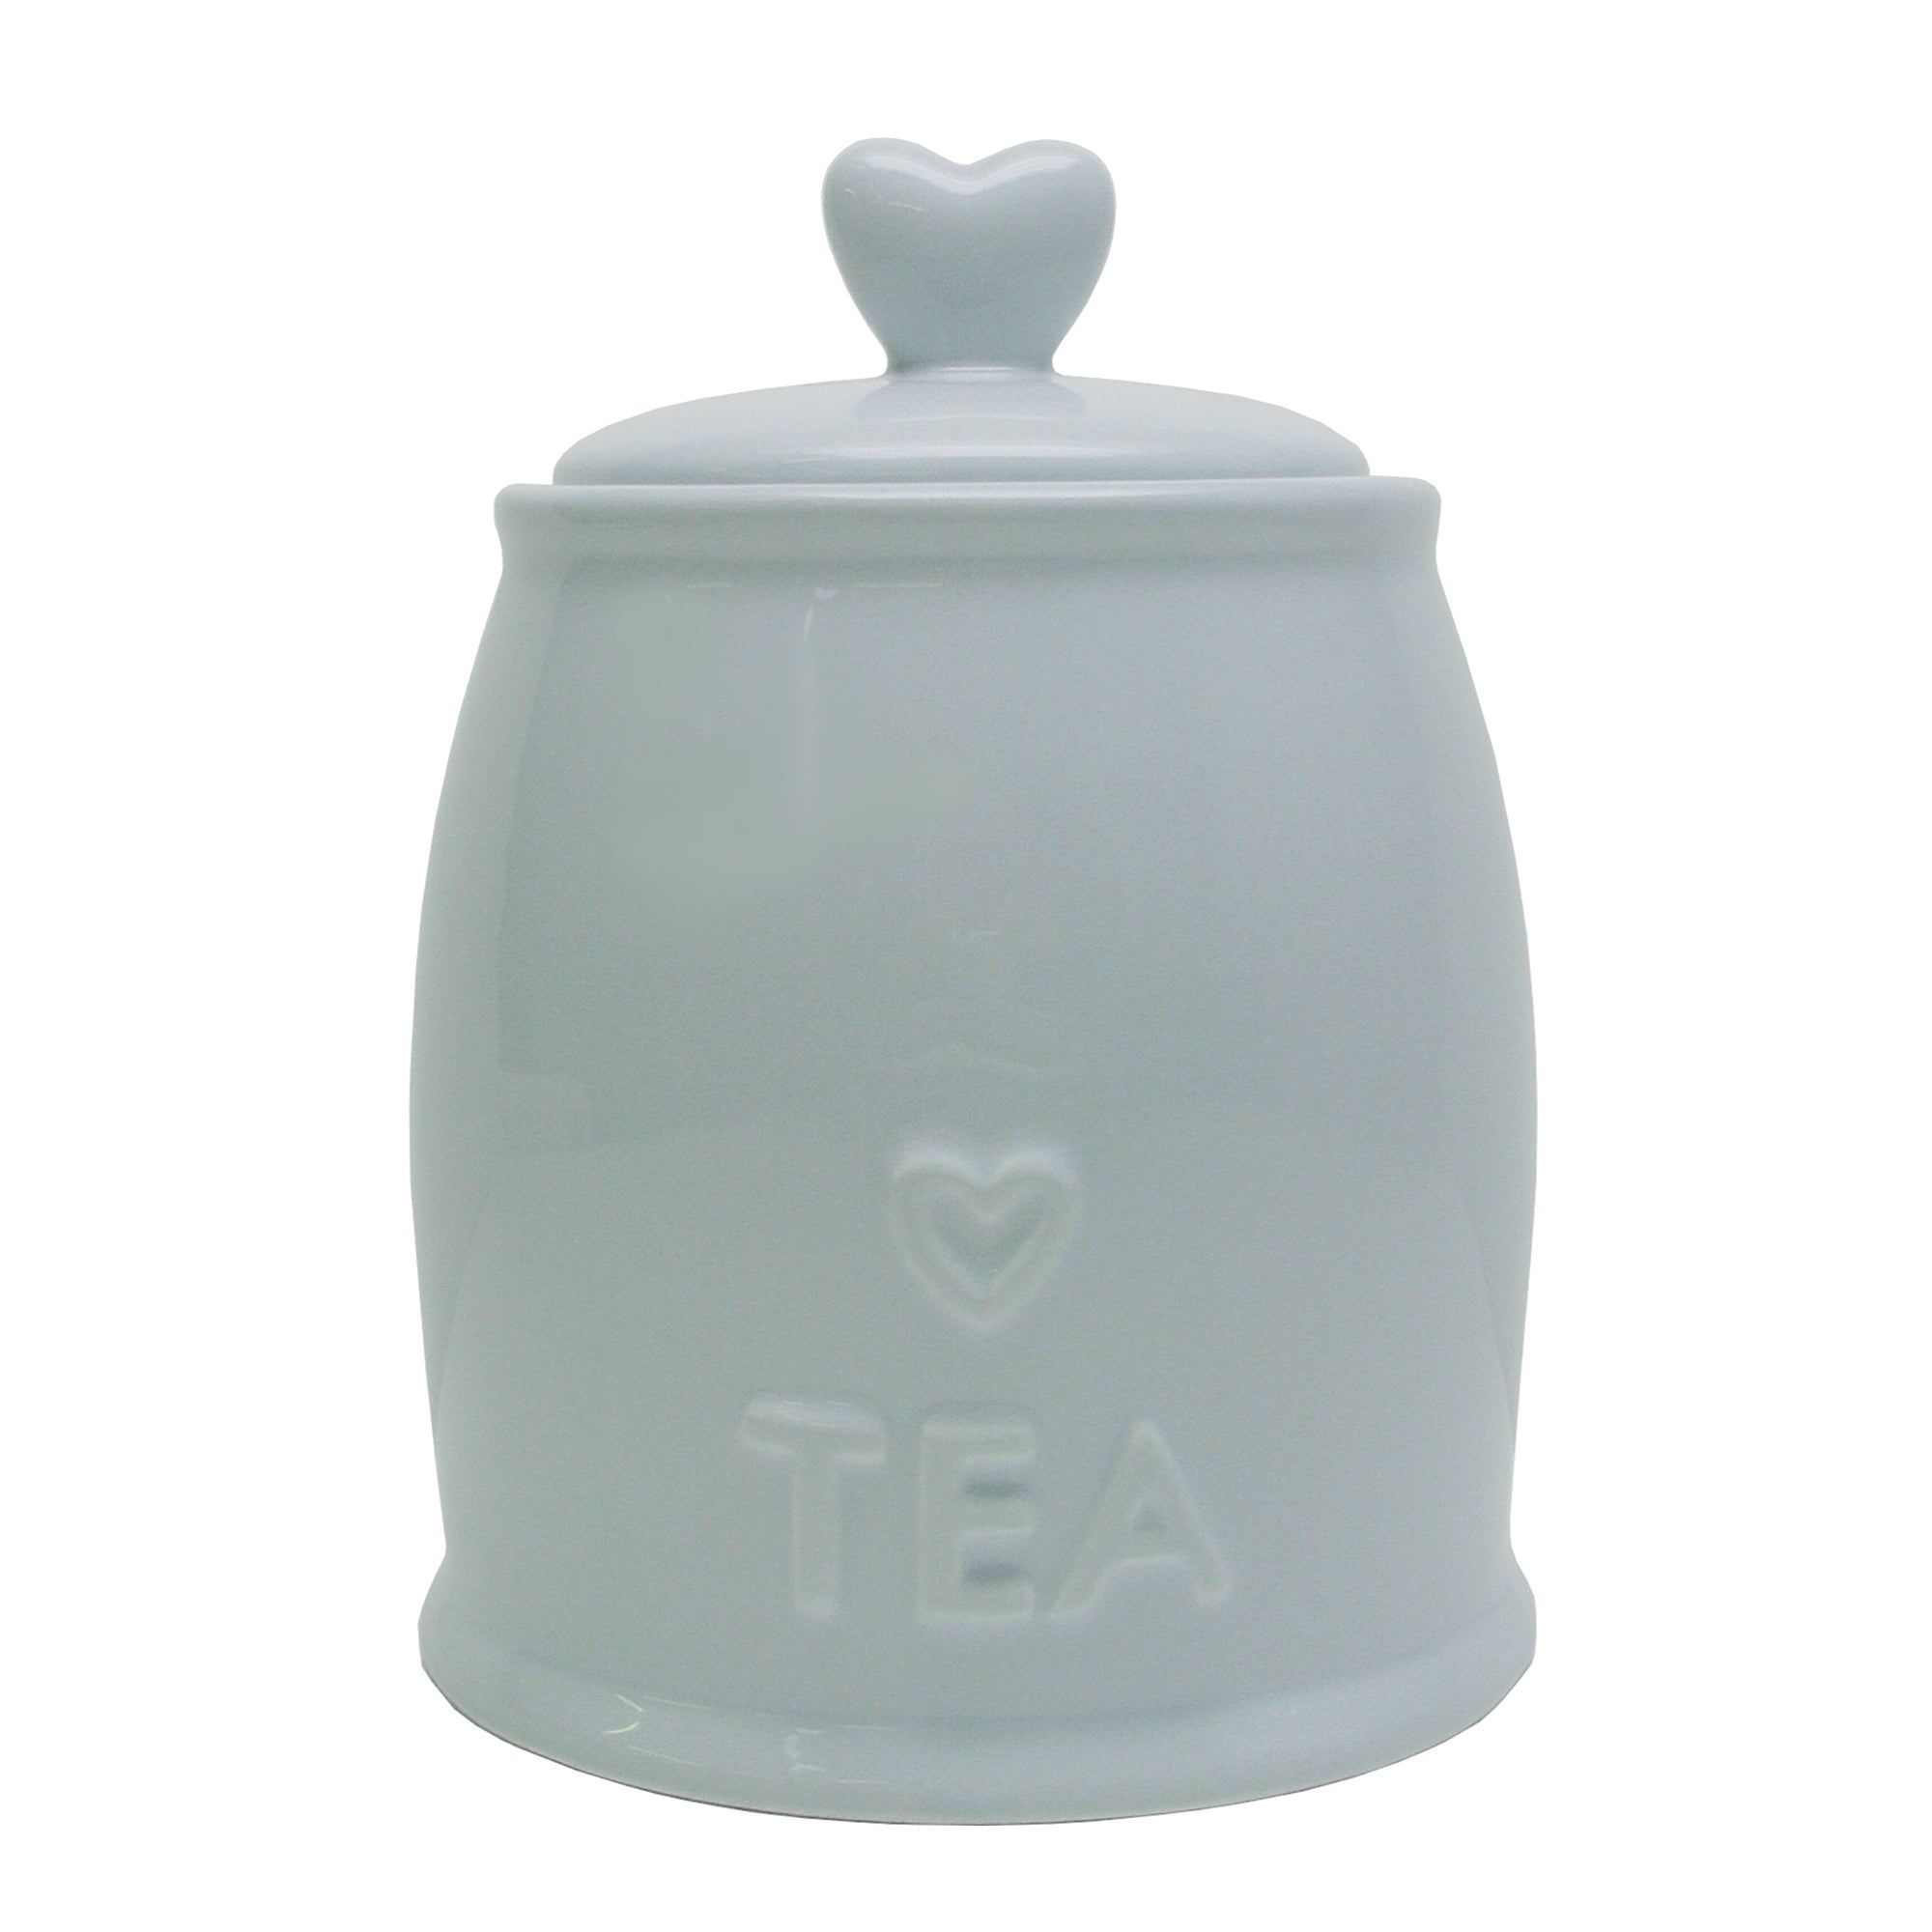 Country Heart DuckEgg Tea Storage Jar Duck Egg Blue